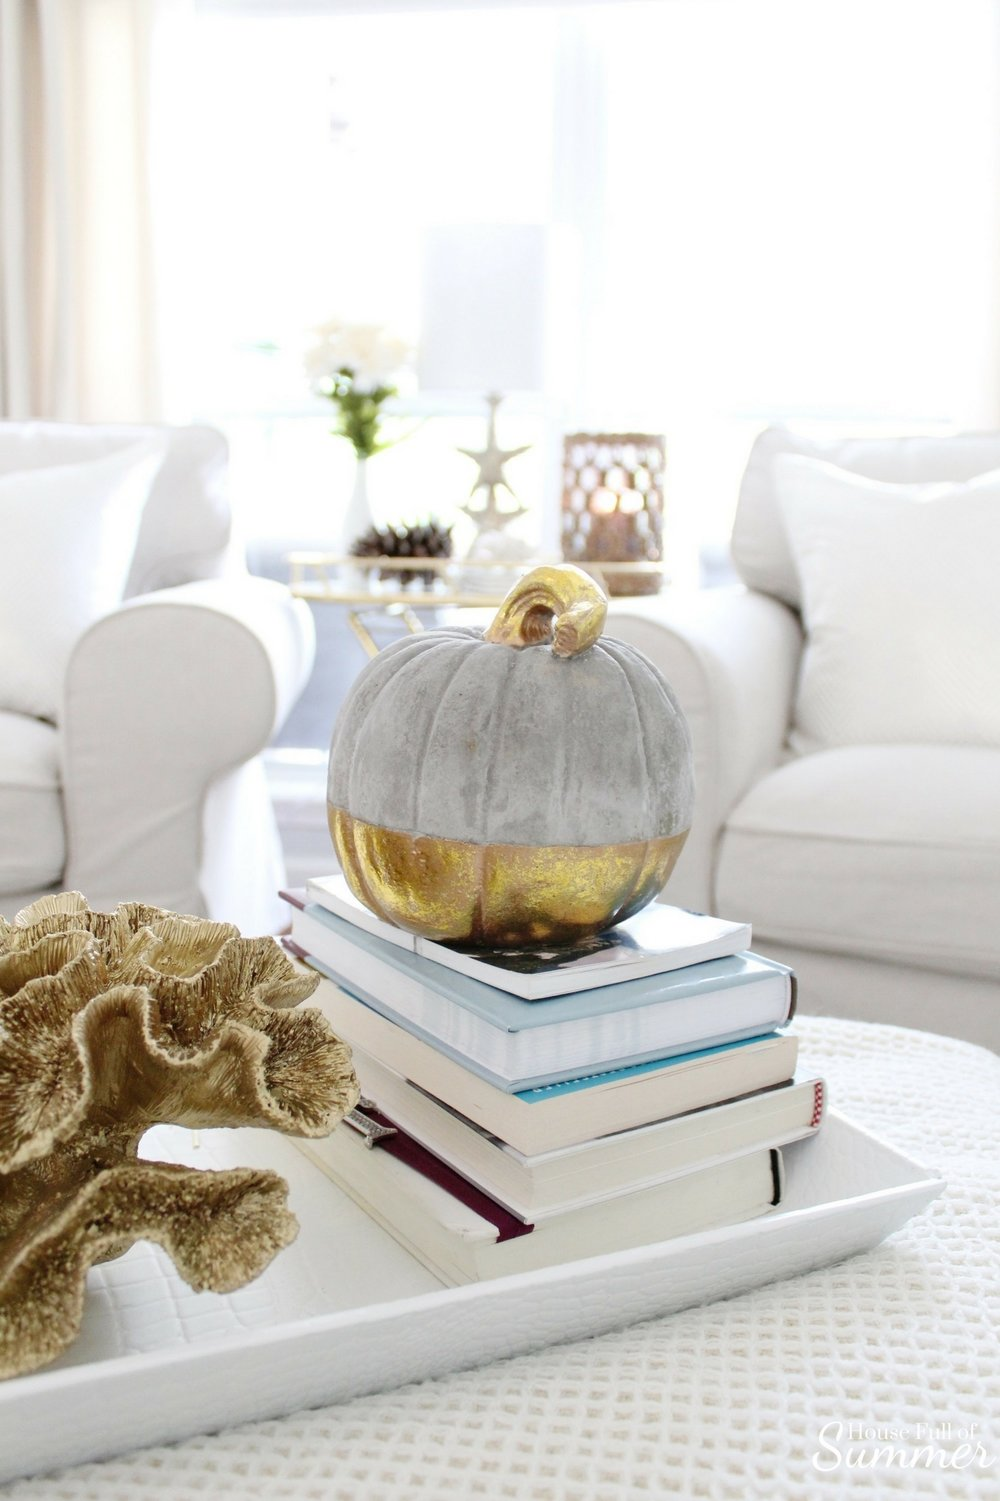 House Full of Summer: Fall Home Tour Blog Hop - Cozy, Coastal, Chic Living Room fall decorating ideas. Neutral interior, living room decor, gold dipped pumpkin, gold coral, living room ideas, sitting room, wood floors, table styling, pine cones, gold accents, home goods